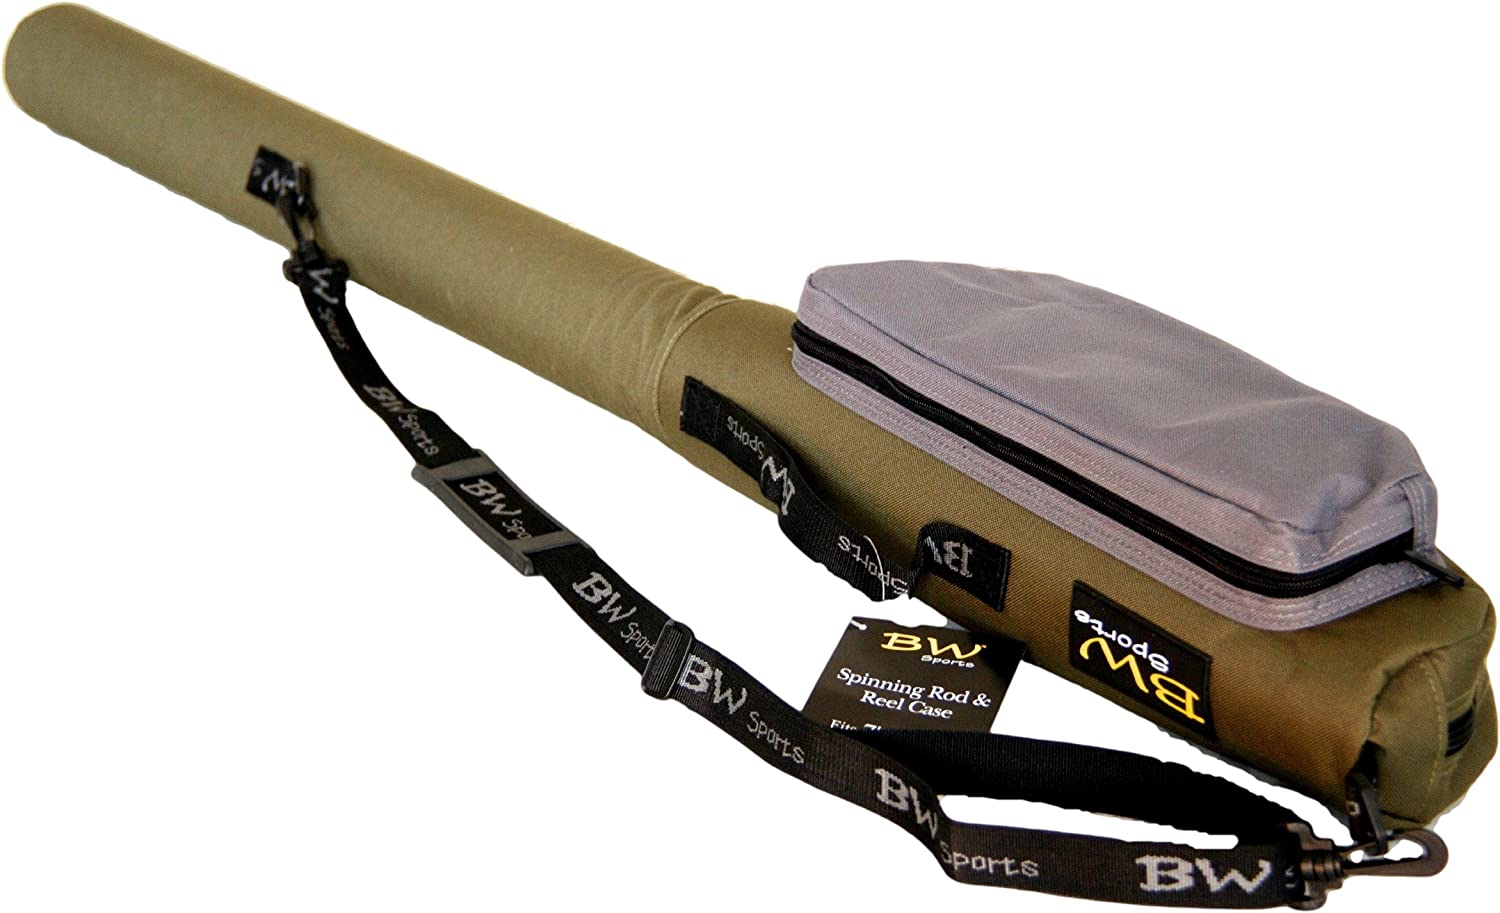 BW Sports Spinning Rod and Reel Case for 7 ft 2-Piece Spinning or Baitcasting Rods – RC-5060